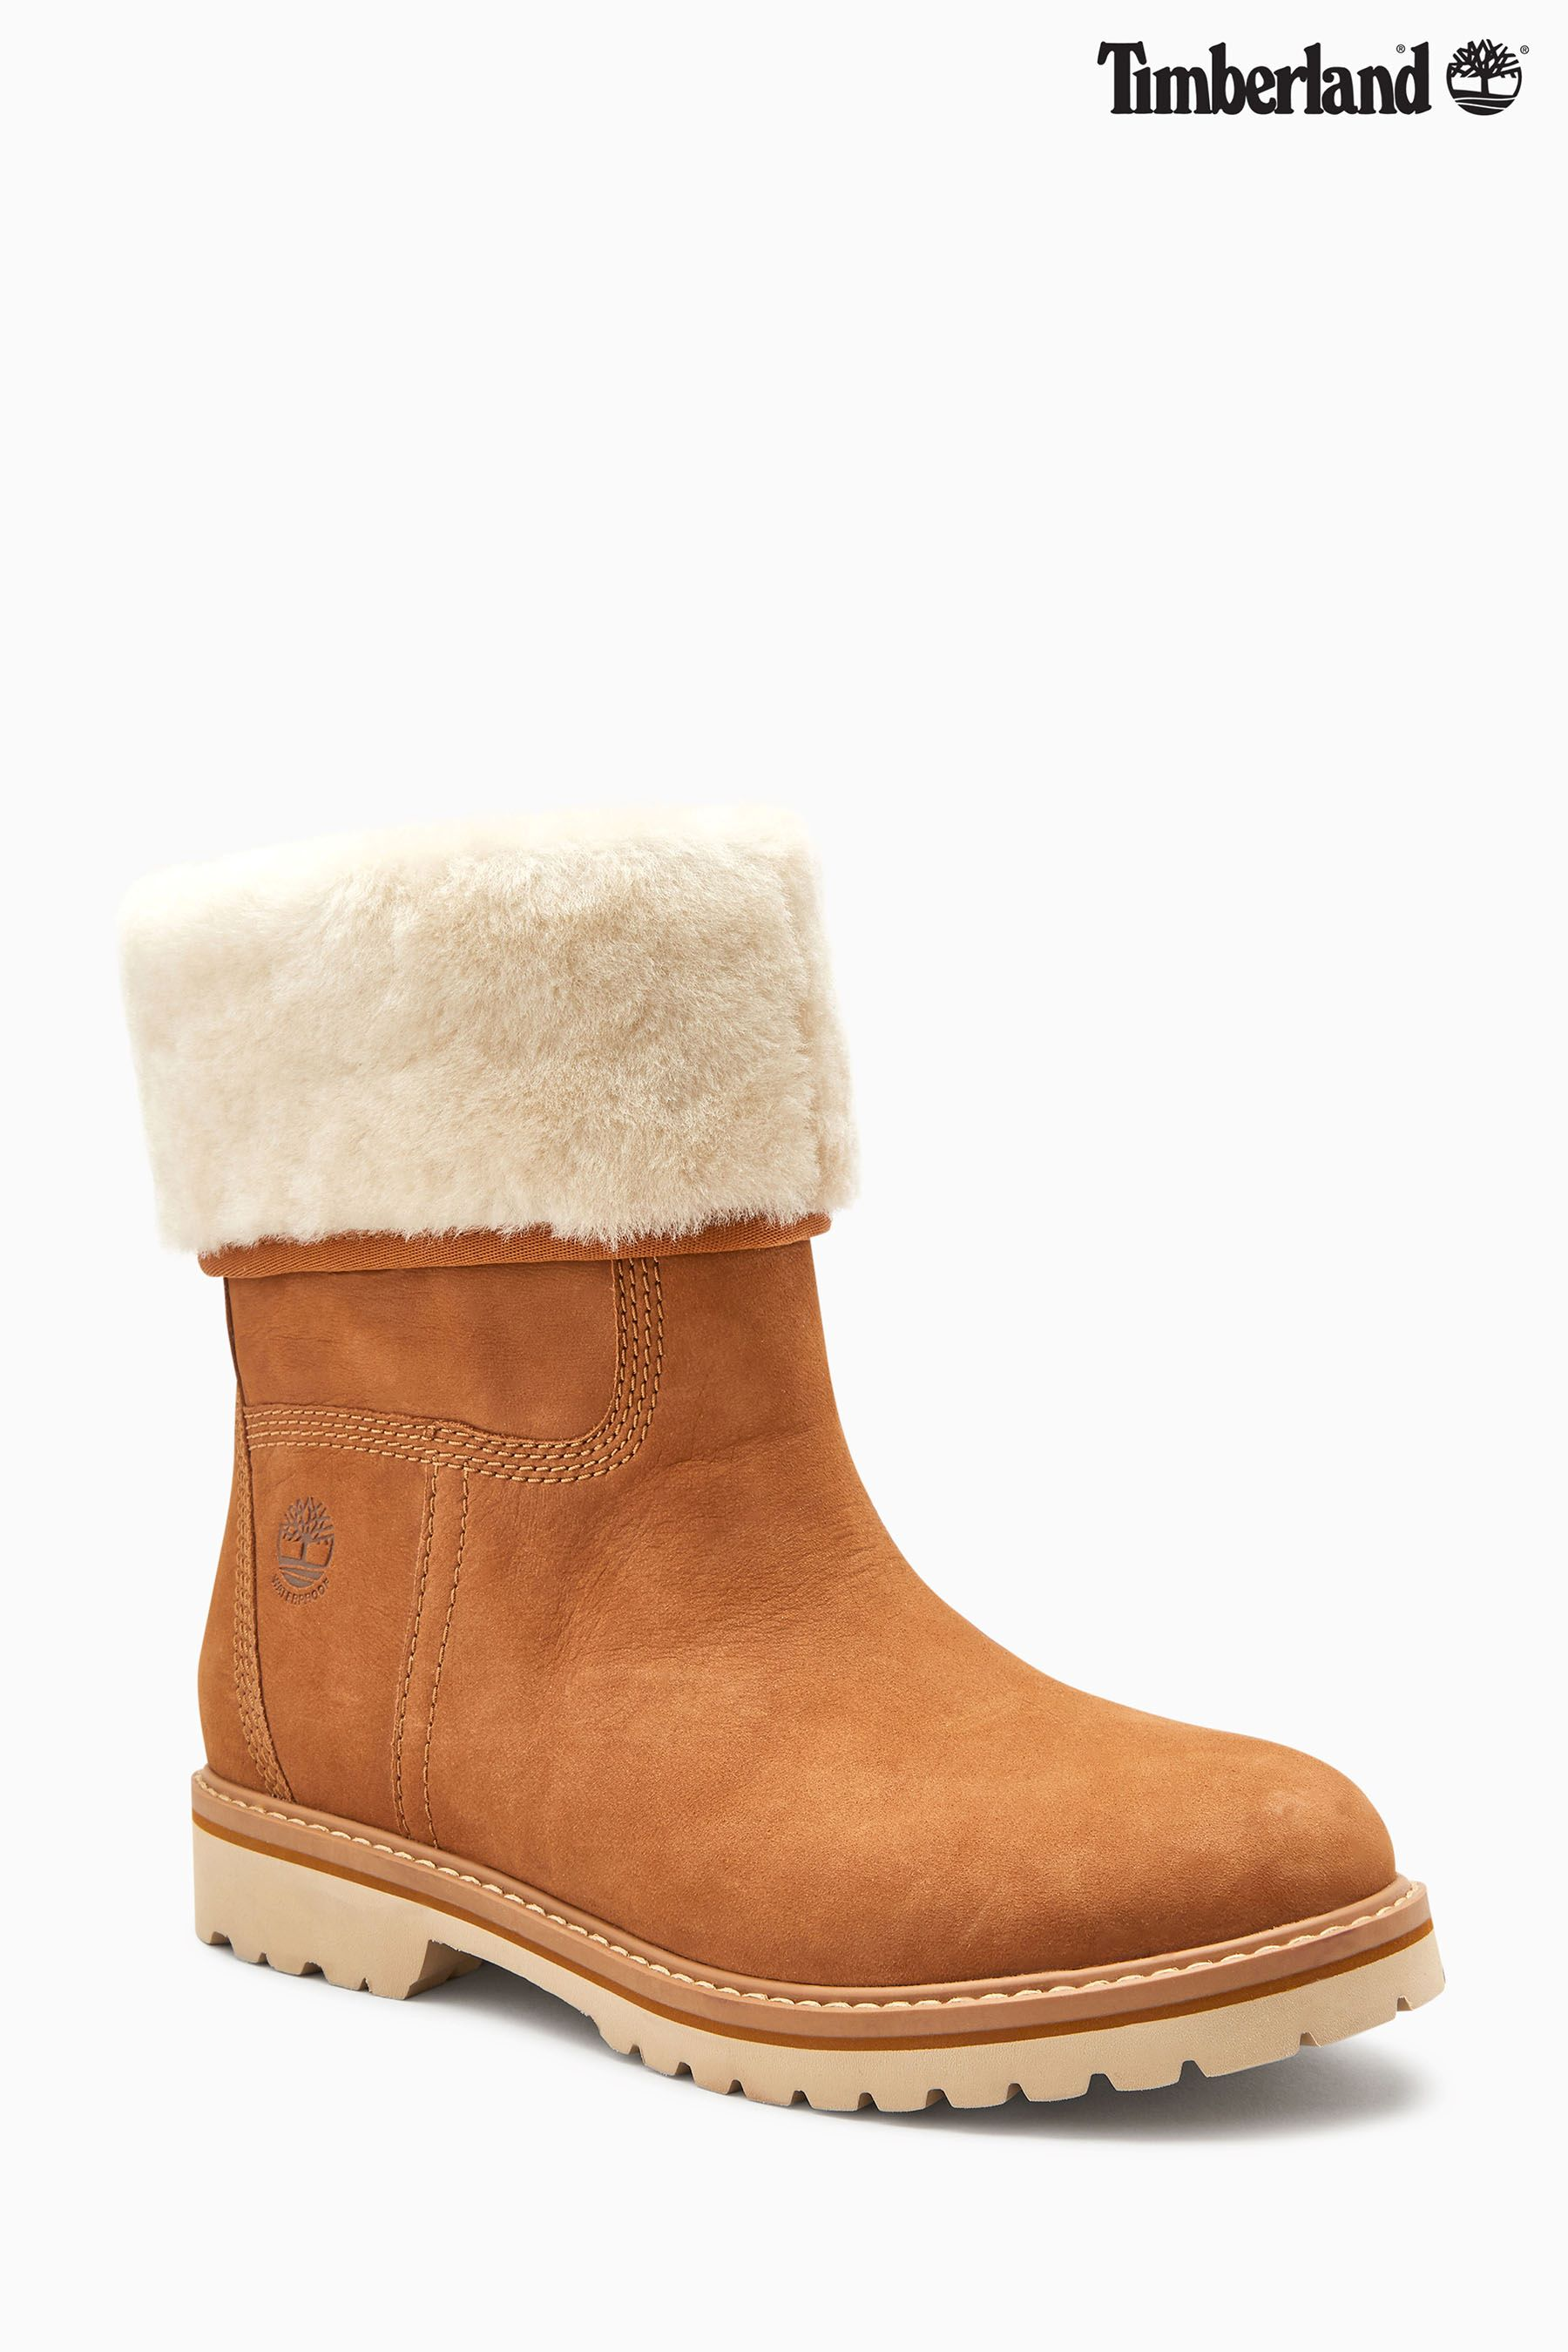 Timberland Boots On Sale Timberland Women's Mont Chevalier